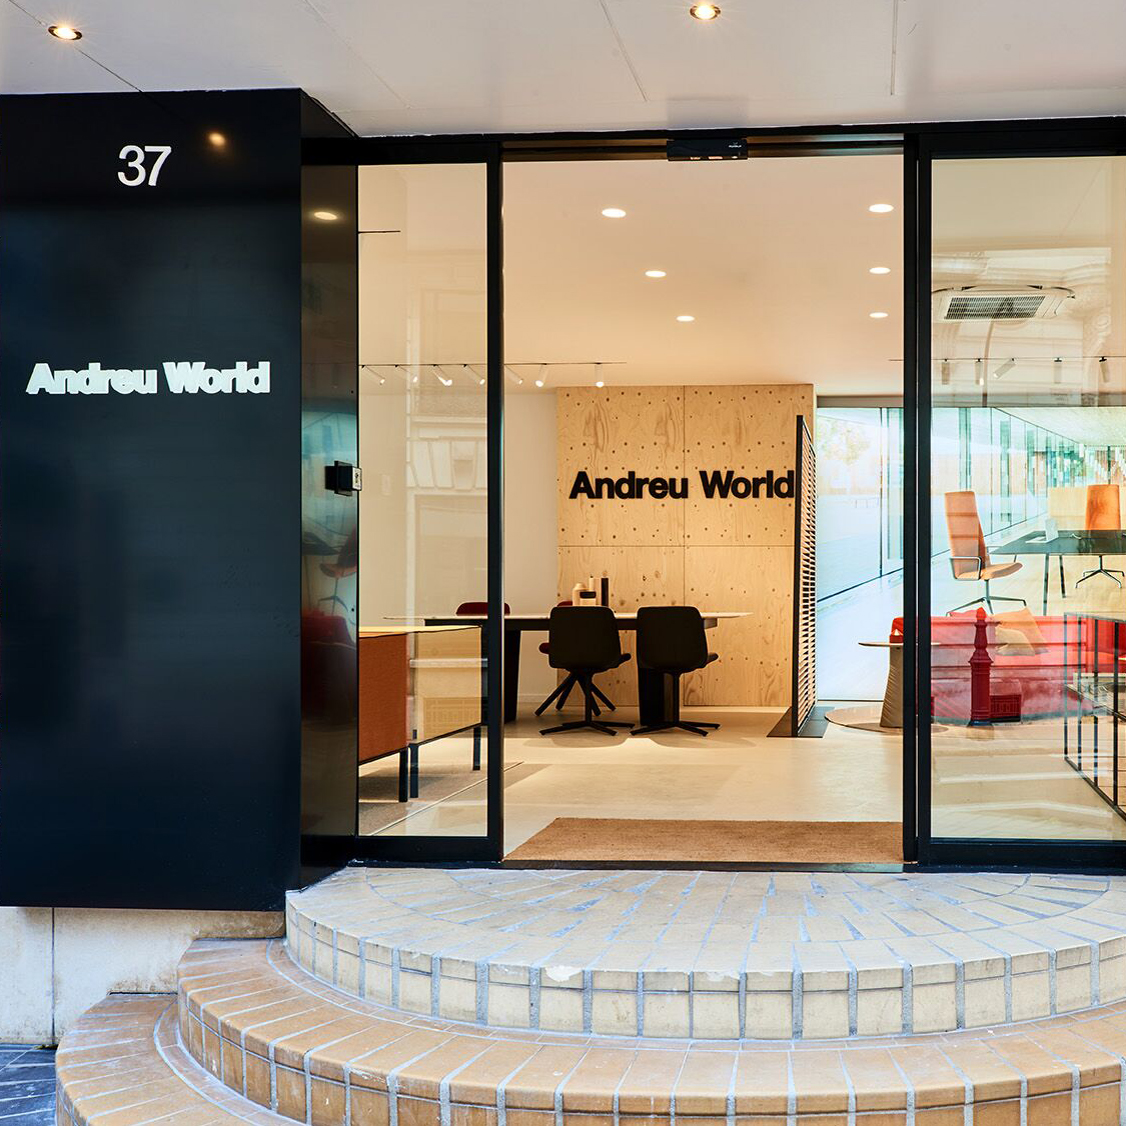 Andreu World´s showroom in Paris (France). Photo by Andreu World